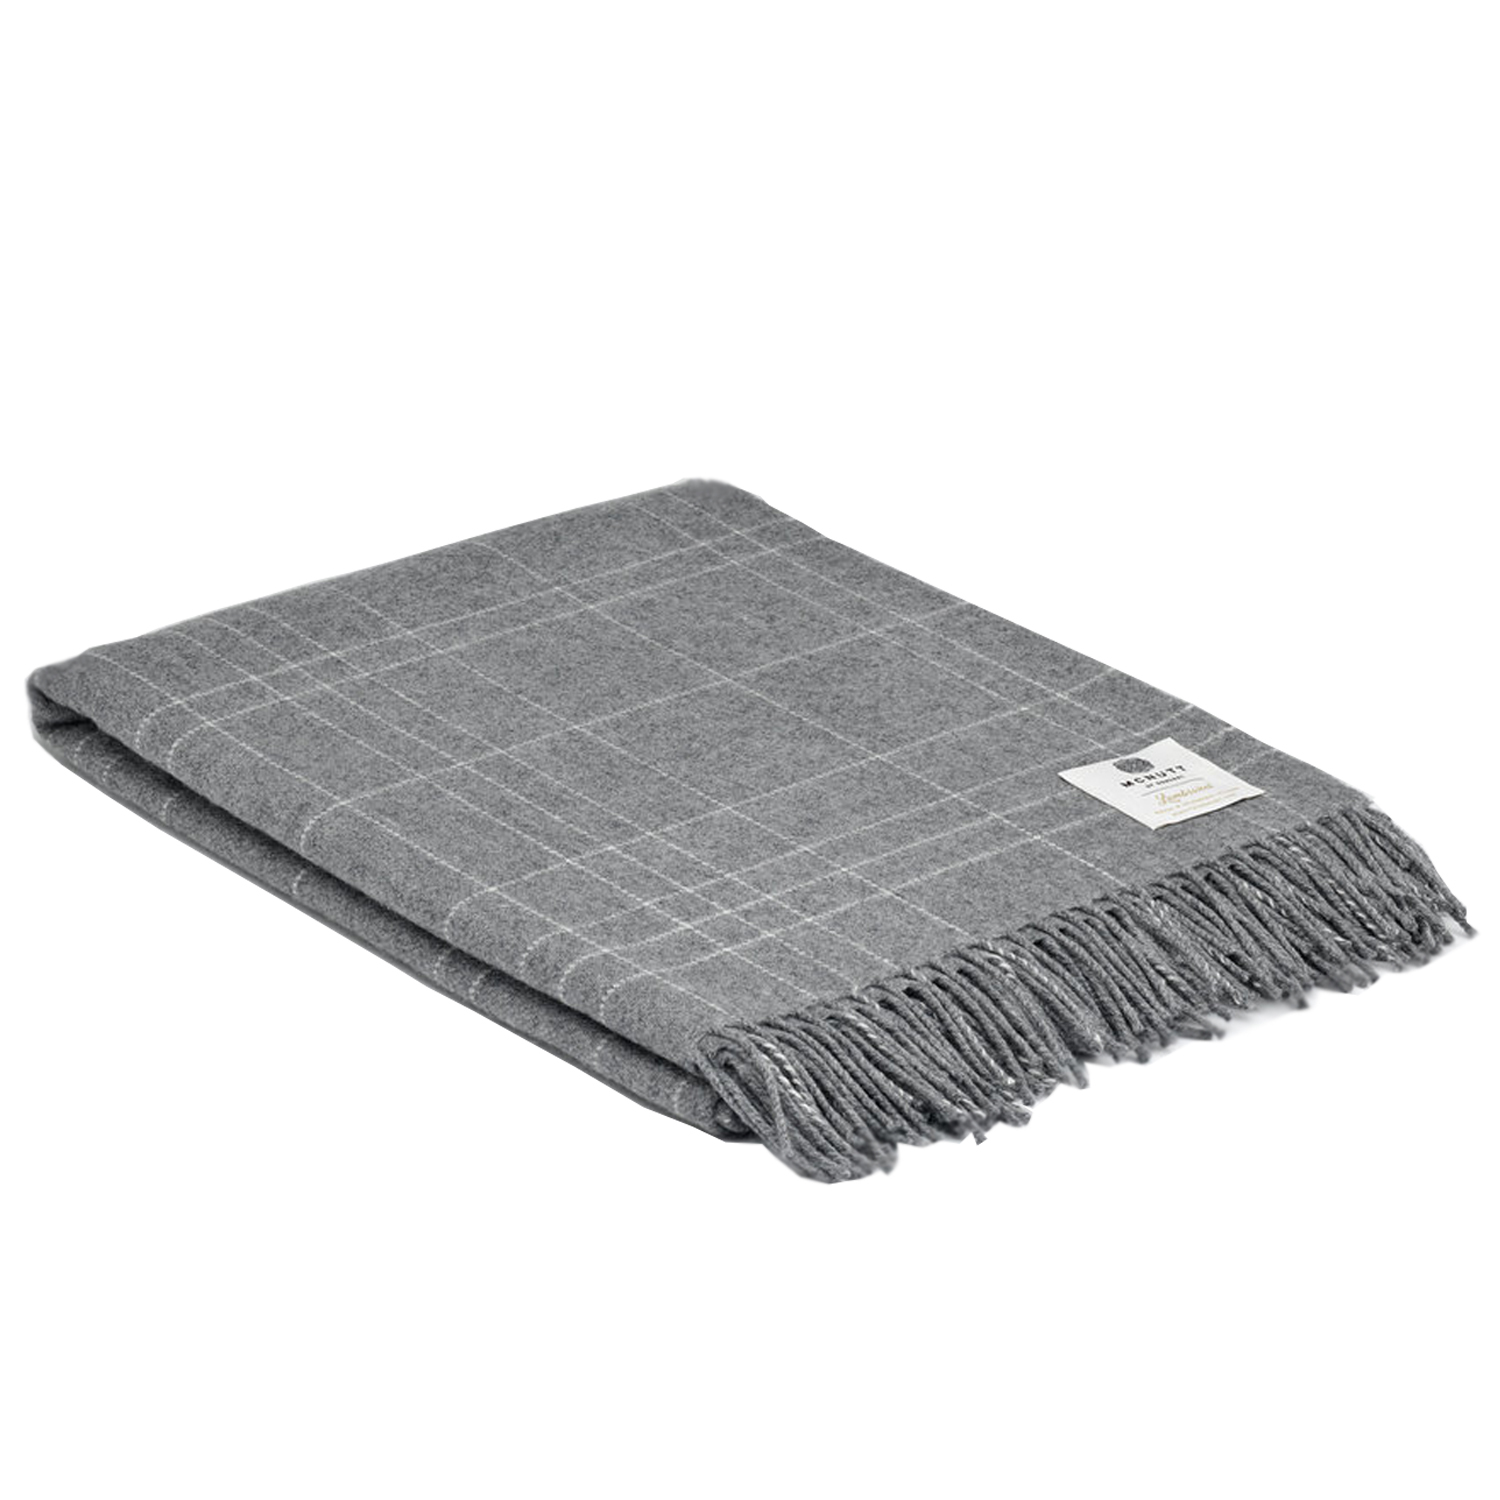 00327 McNutt of Donegal Grey Check Supersoft lambswool throw